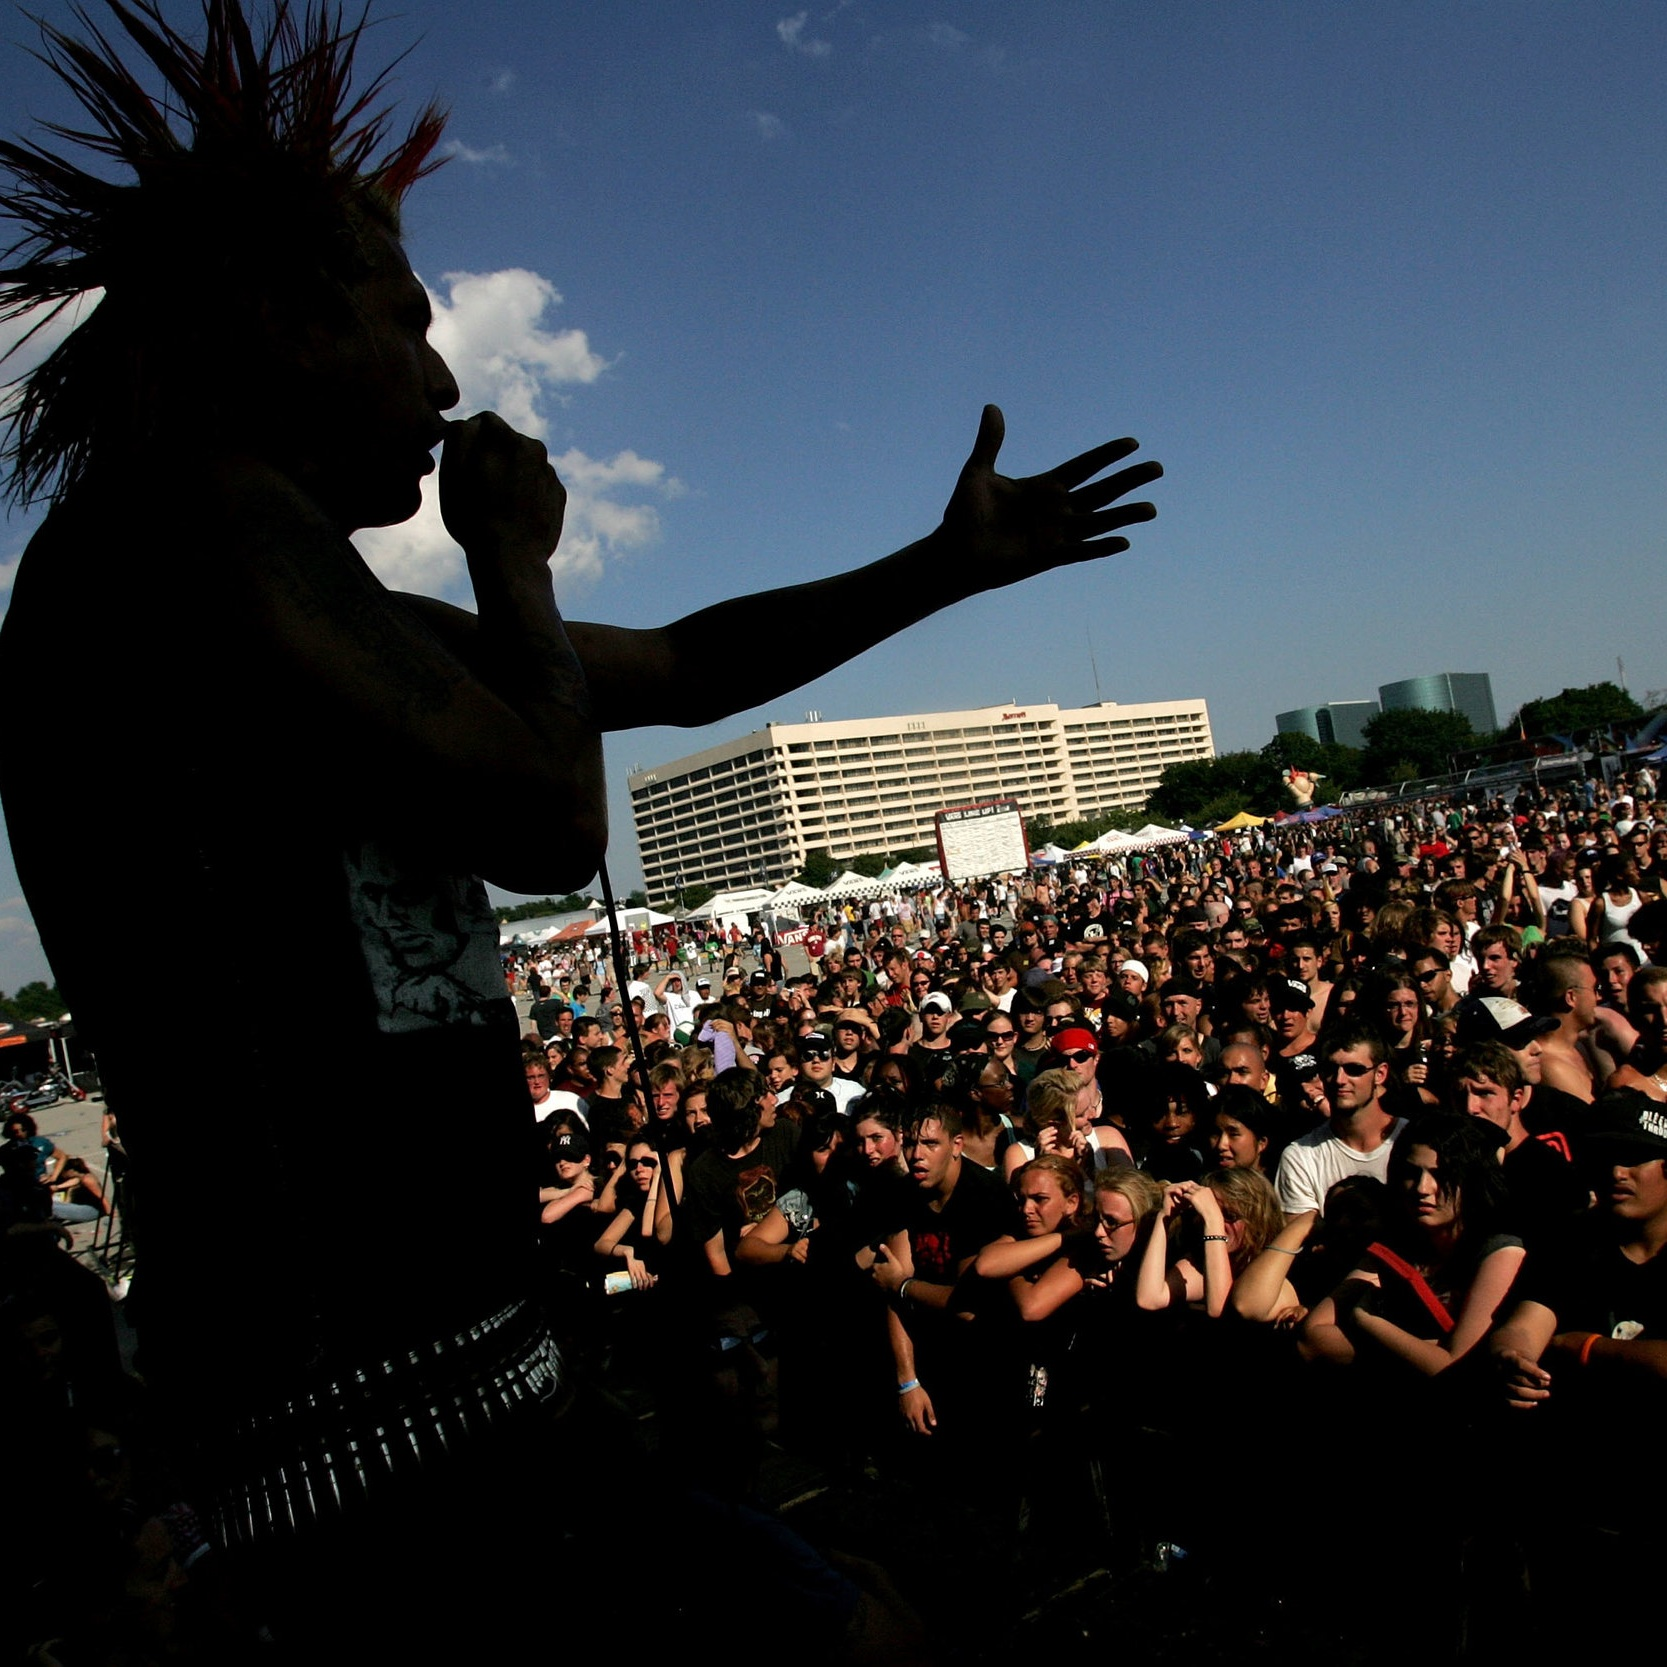 How Warped Tour Led the Consumerist Music Festival Revolution - The Goods